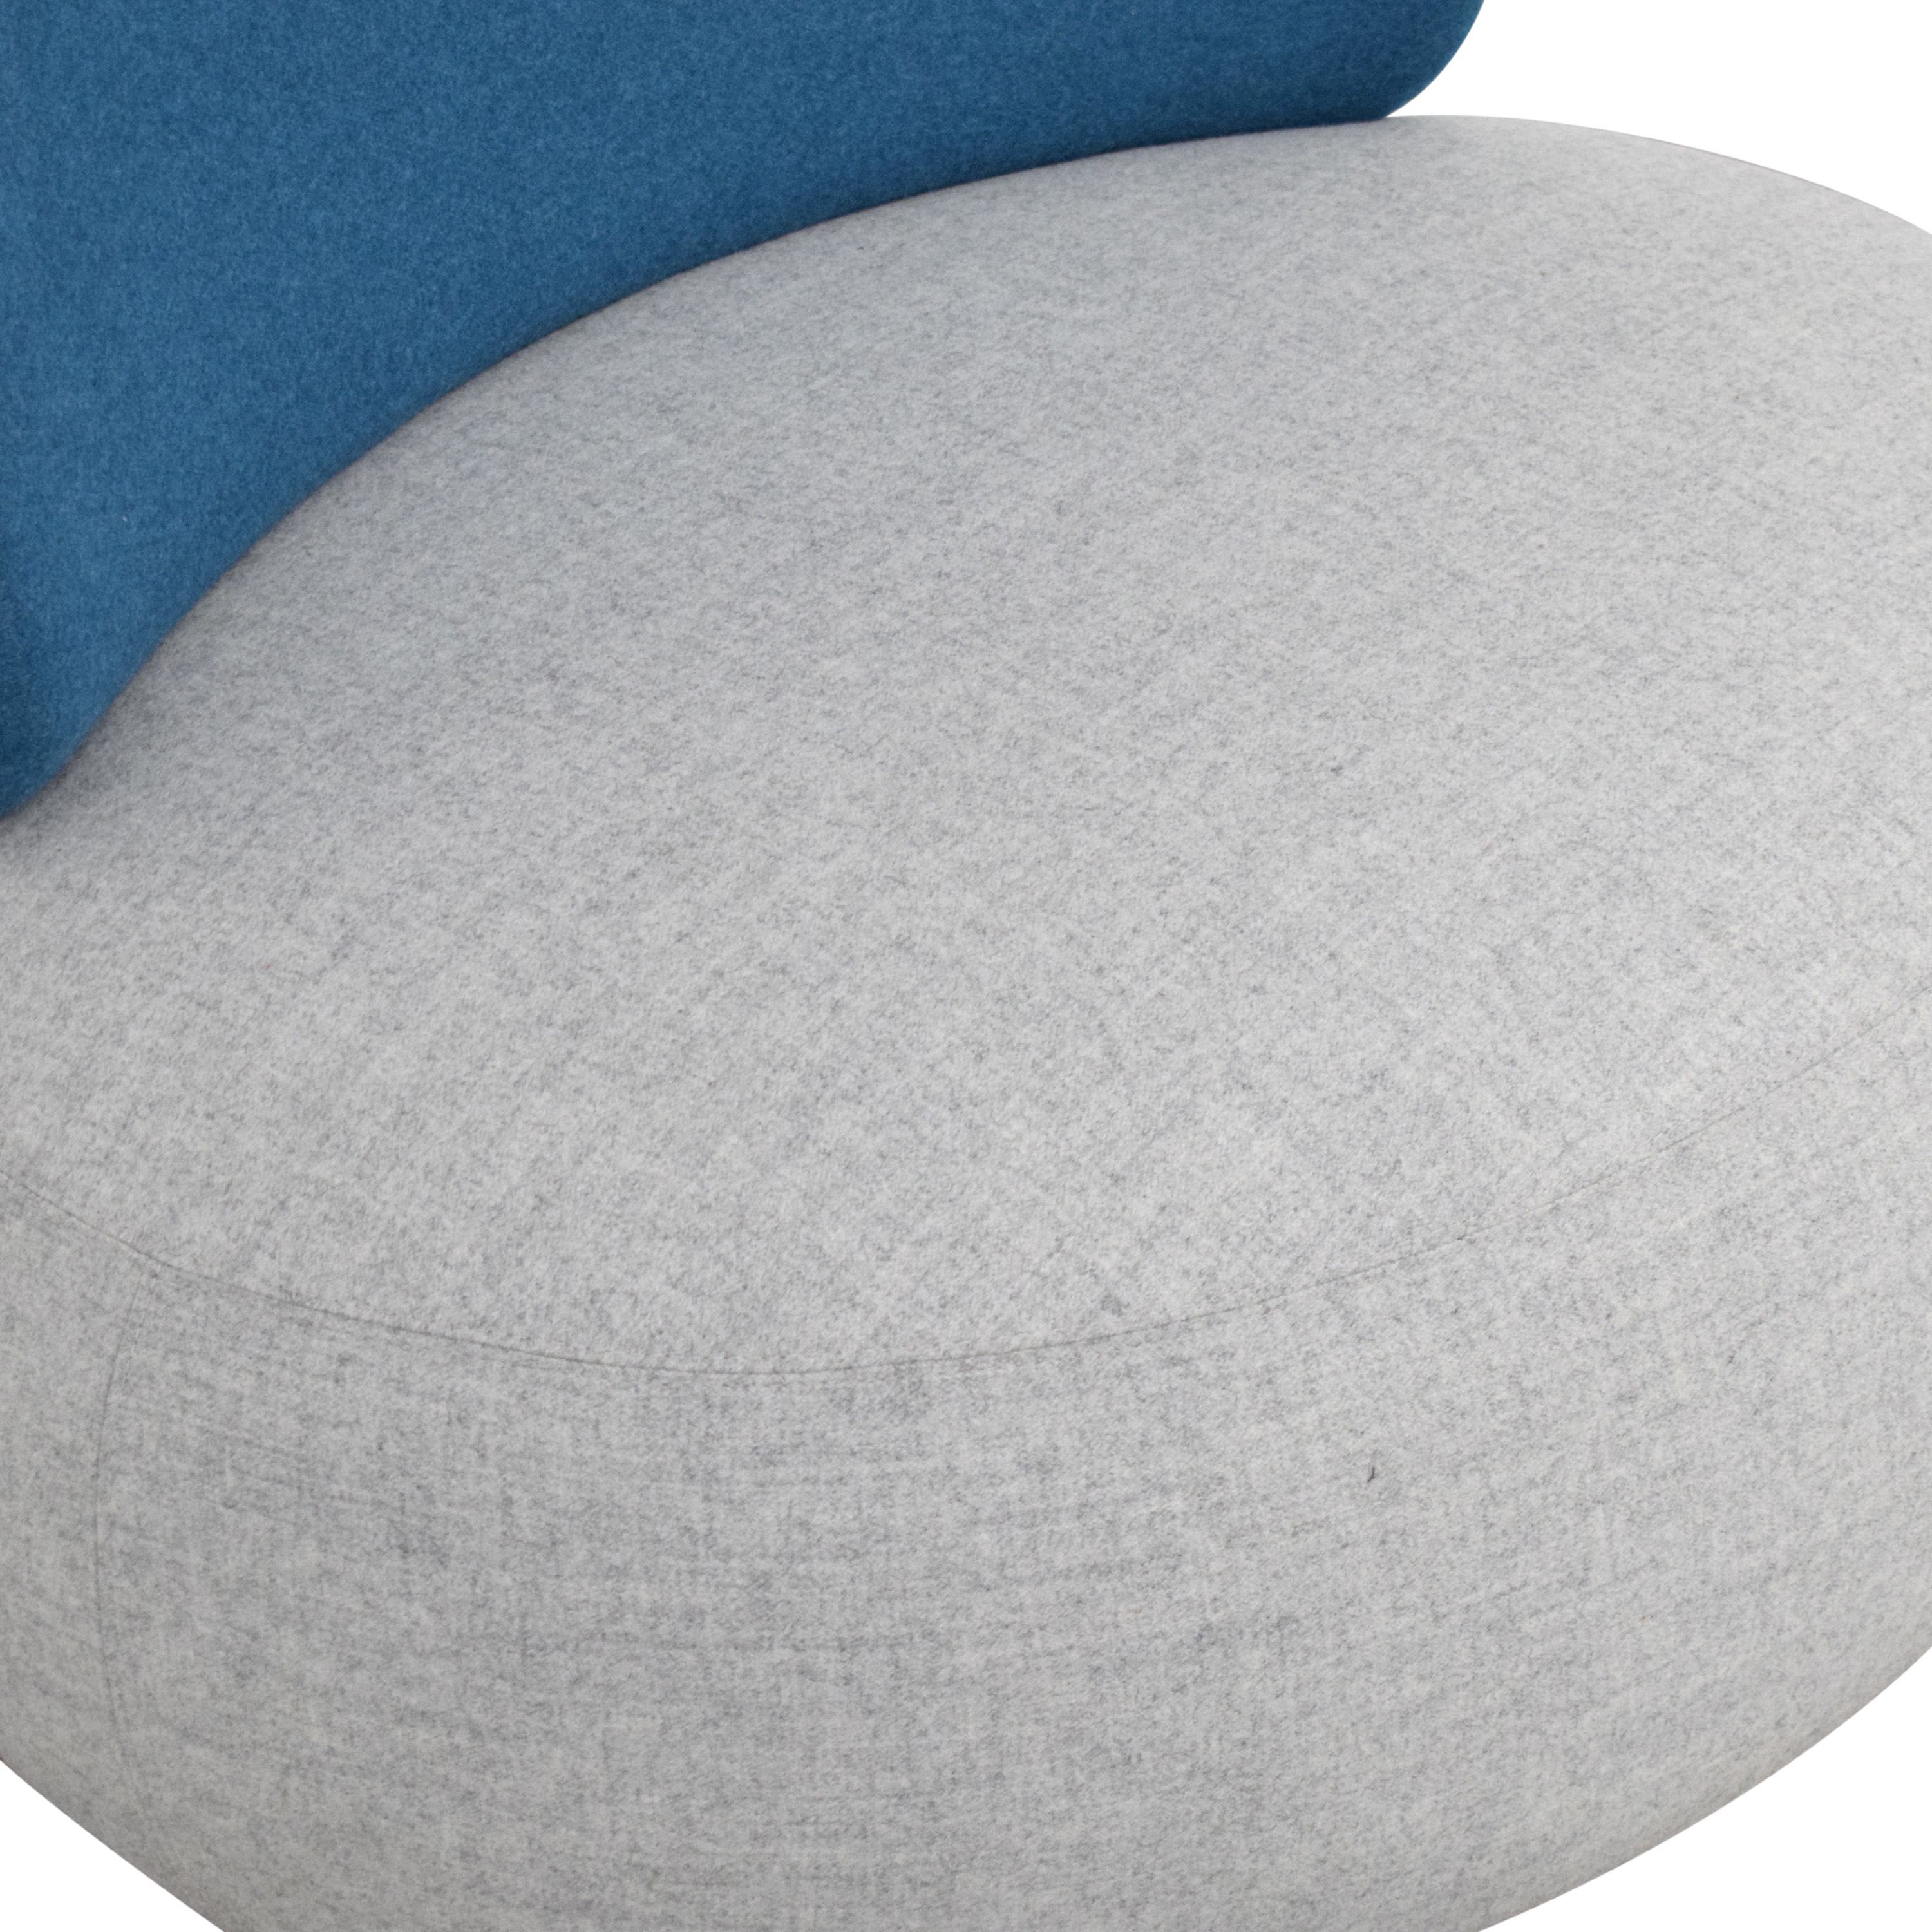 Koleksiyon Solis Pouf with Backrest Koleksiyon